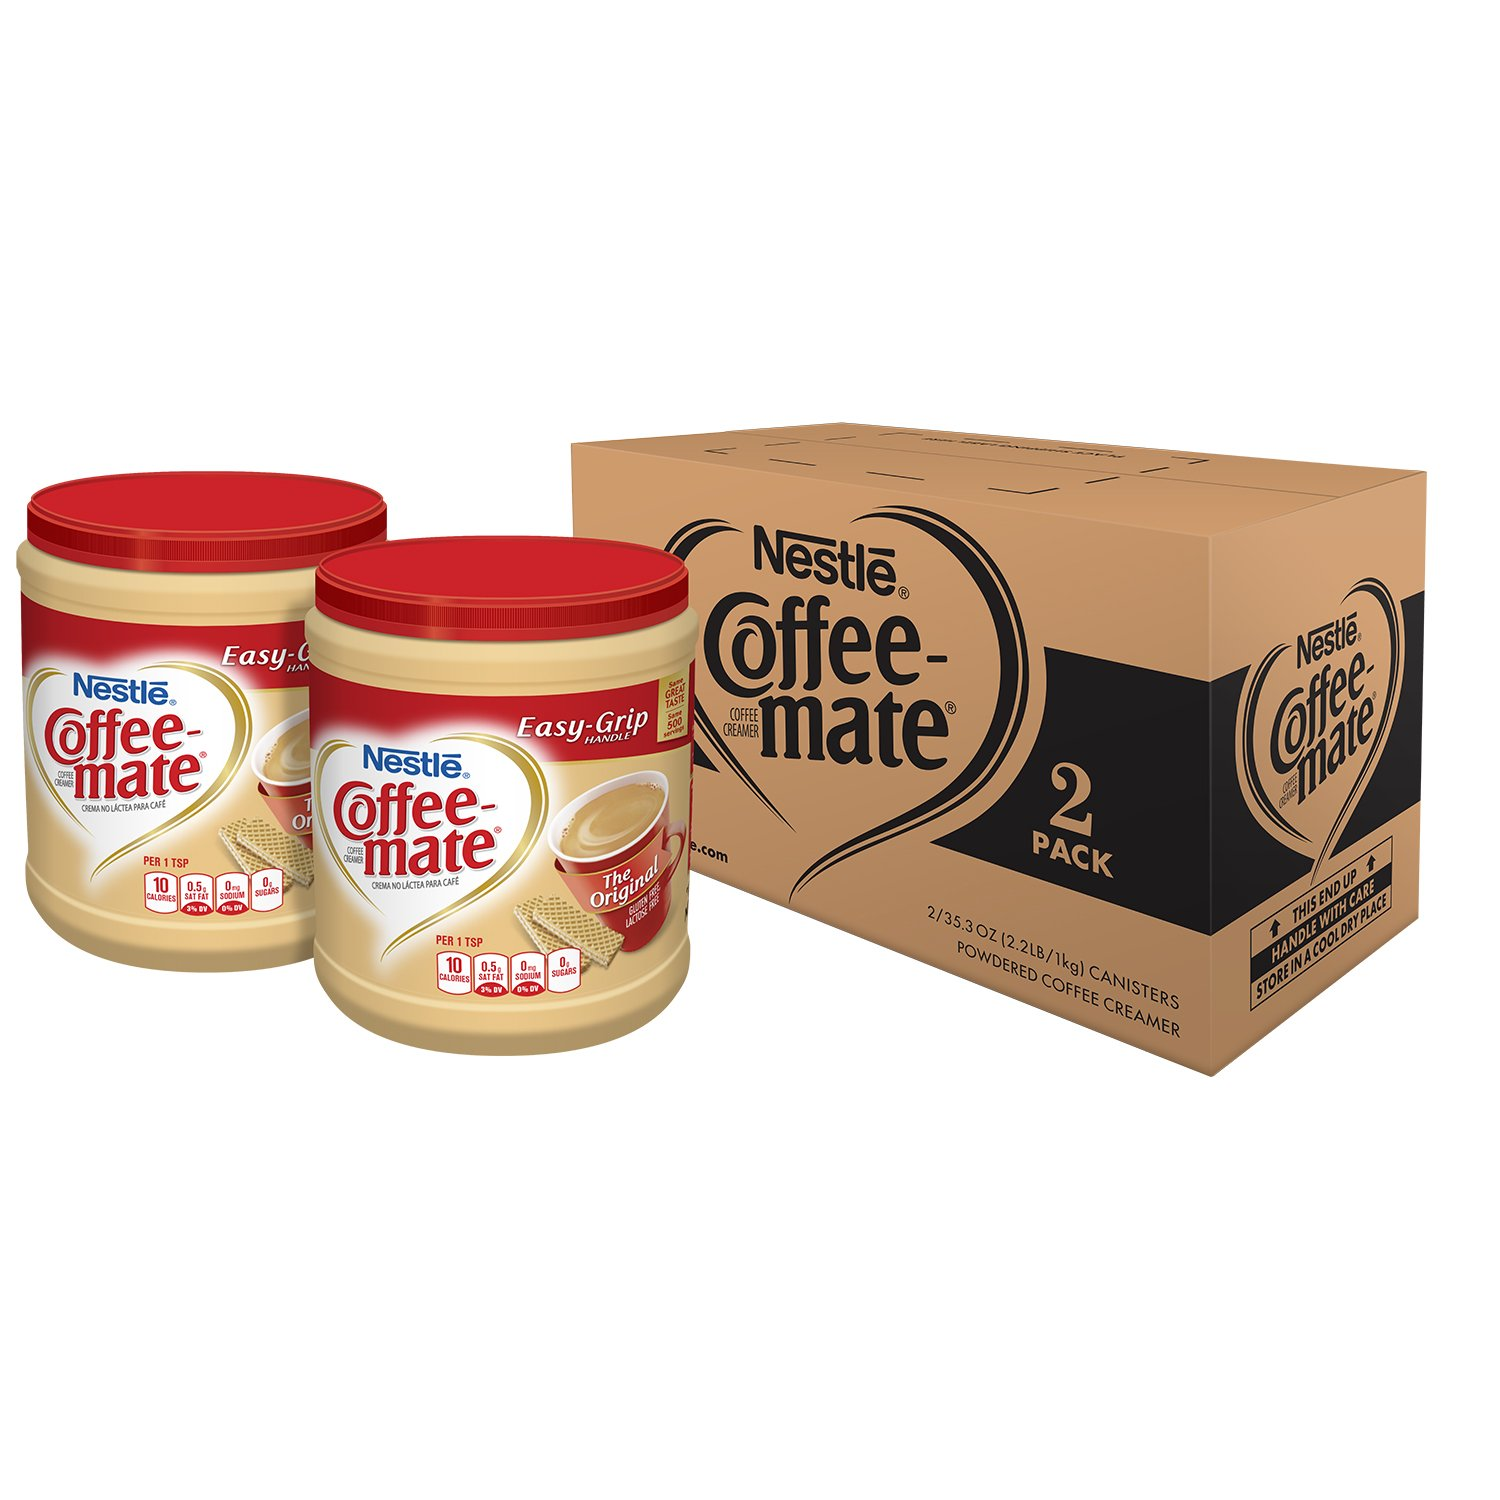 Coffee-mate Original Powder Coffee Creamer, 35.3 Ounce, 2 Count